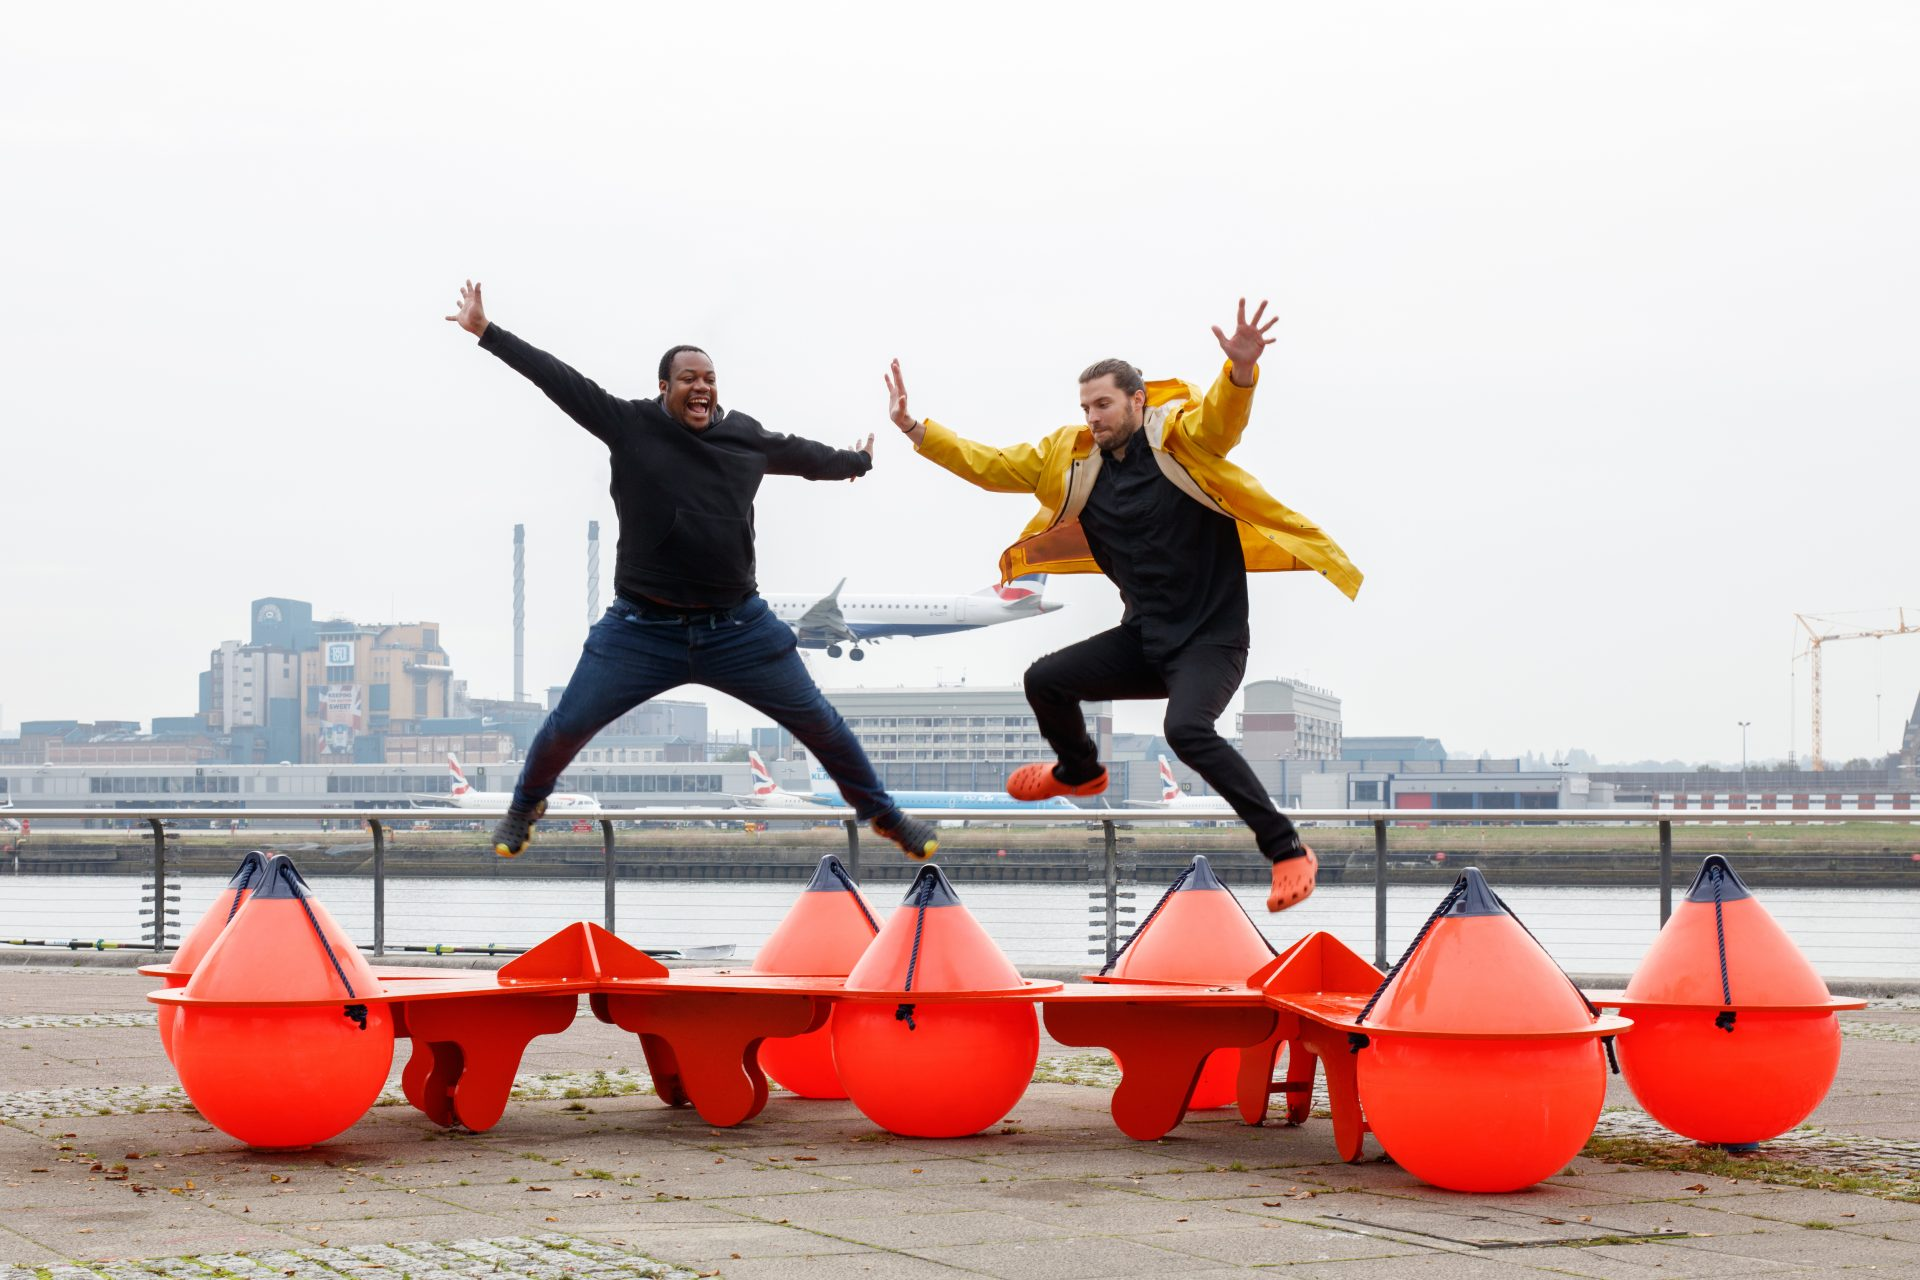 LFA and Royal Docks Team reveal new series of waterside benches